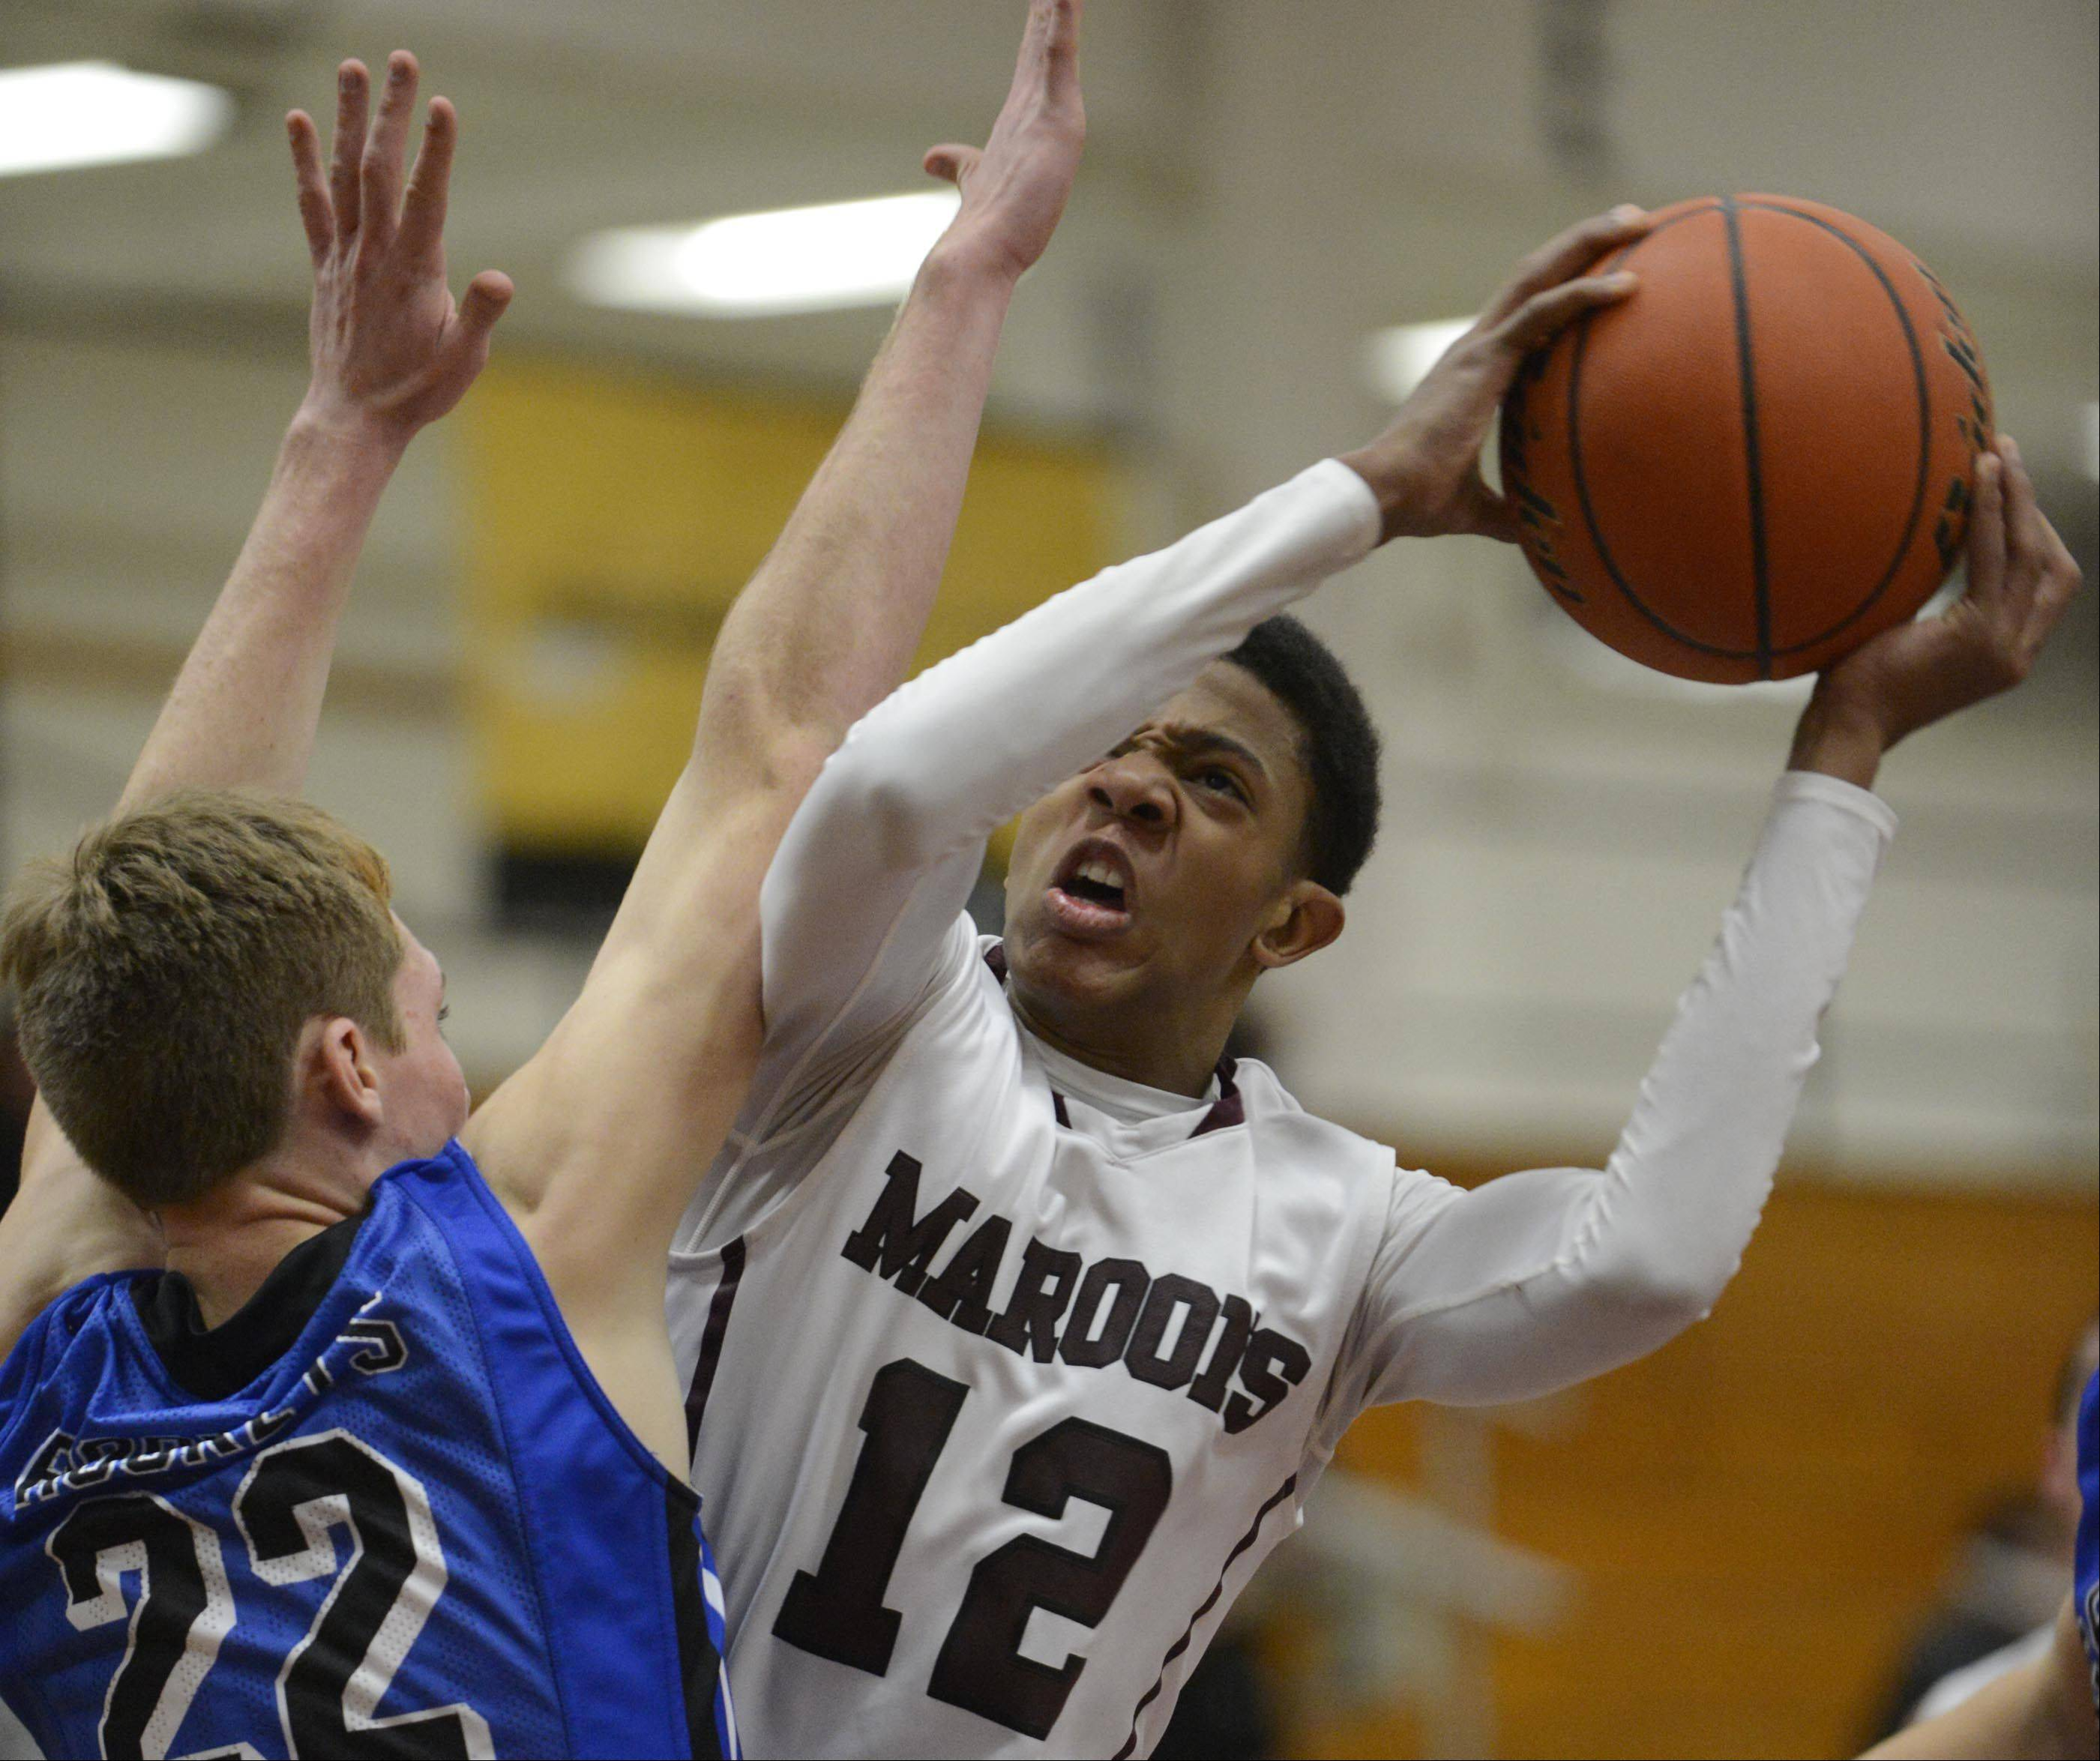 Elgin's Desmond Sanders is fouled by Burlington-Central's Sean Fitzgerald Tuesday in Elgin.